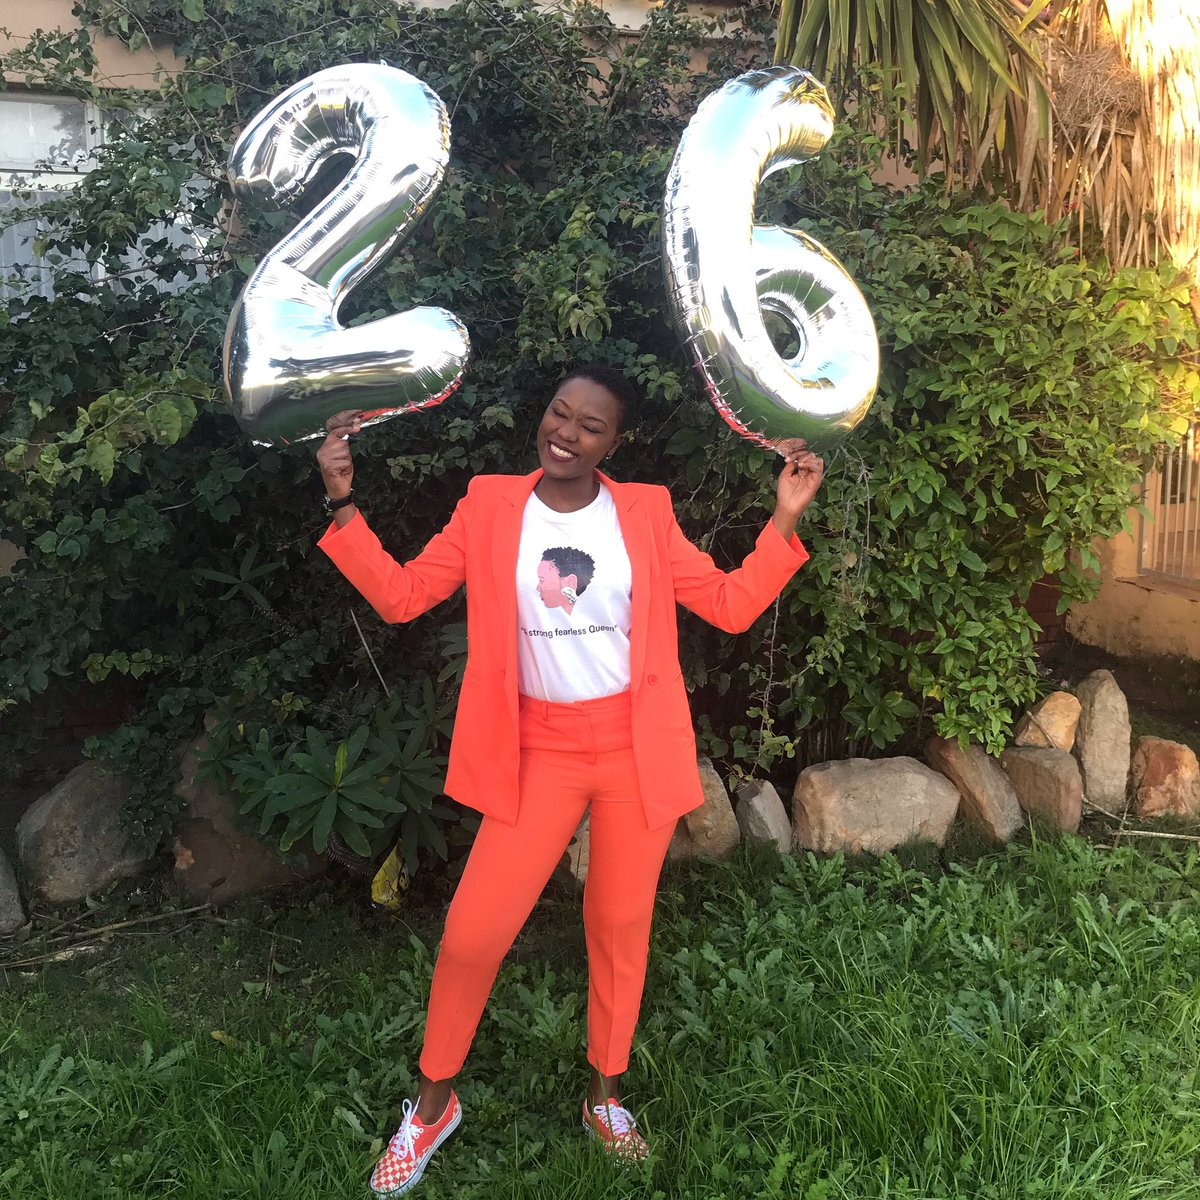 Happy birthday to me❤️ • Suit @TheFIXza  Shoes @VANS_66  T-shirt @QhawekaziWear   #qhawekaziwear #outfitshare #Phenomenal #26years #meetingyourpower💪 #strength #stronggirl #suitstyle #ladyinsuit #happybirthday #12july https://t.co/DDZyV0y2KY